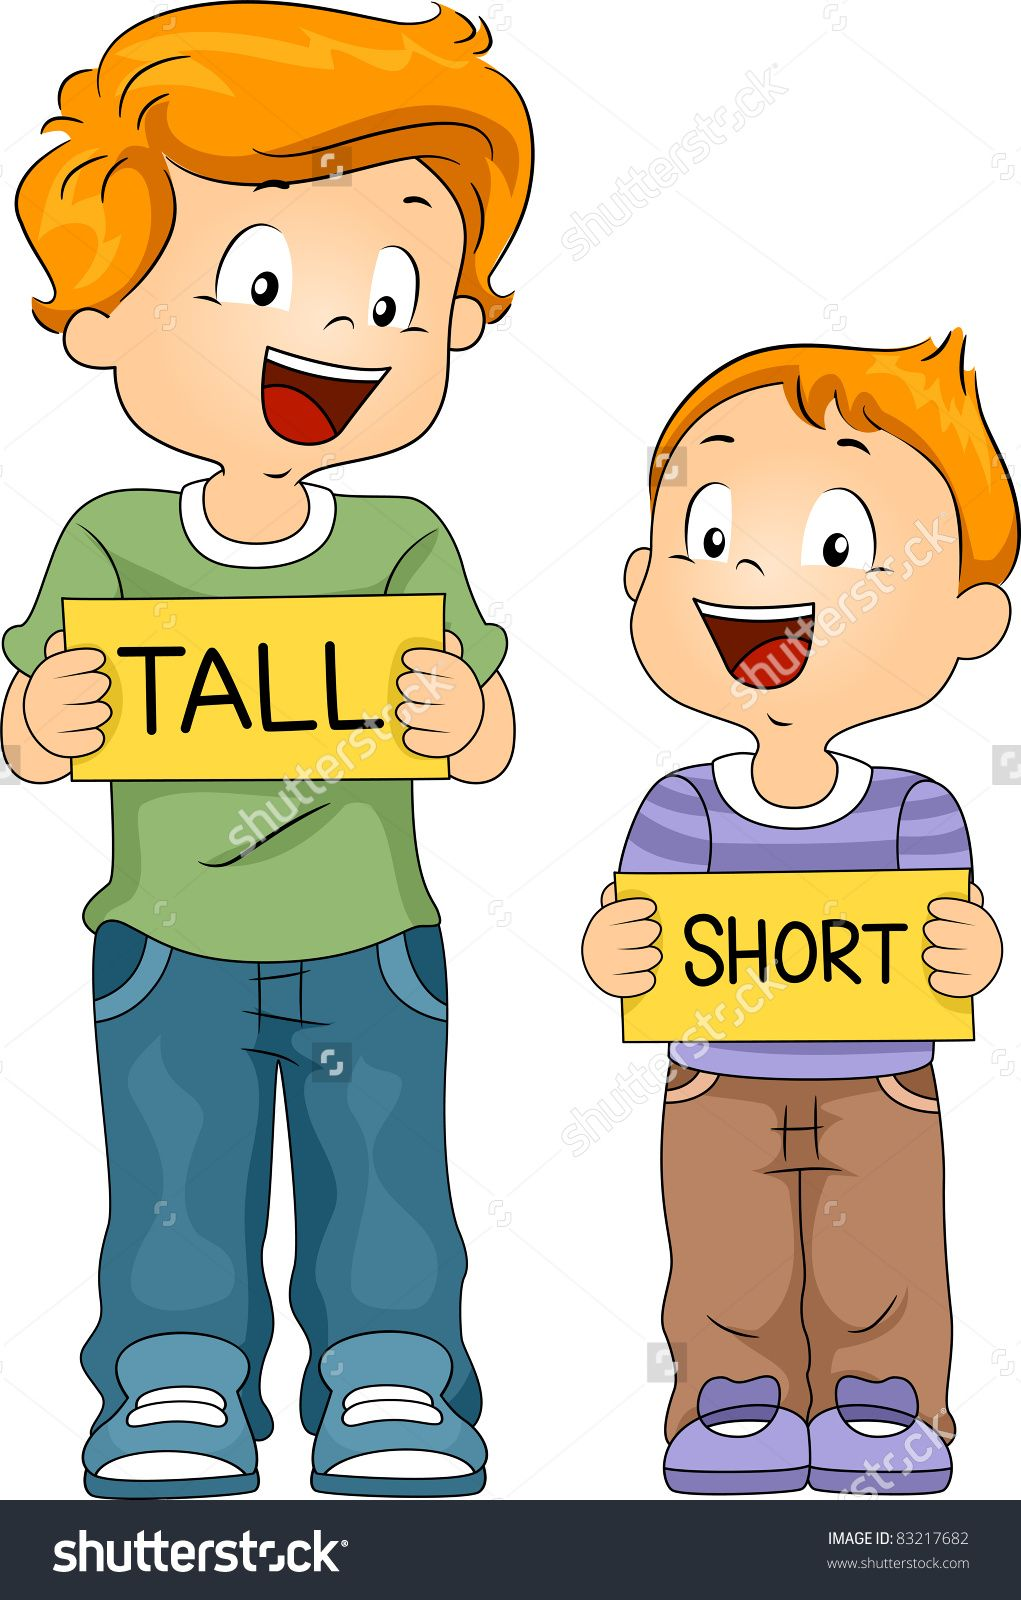 short and tall clipart - Buscar con Google | Cliparts ...